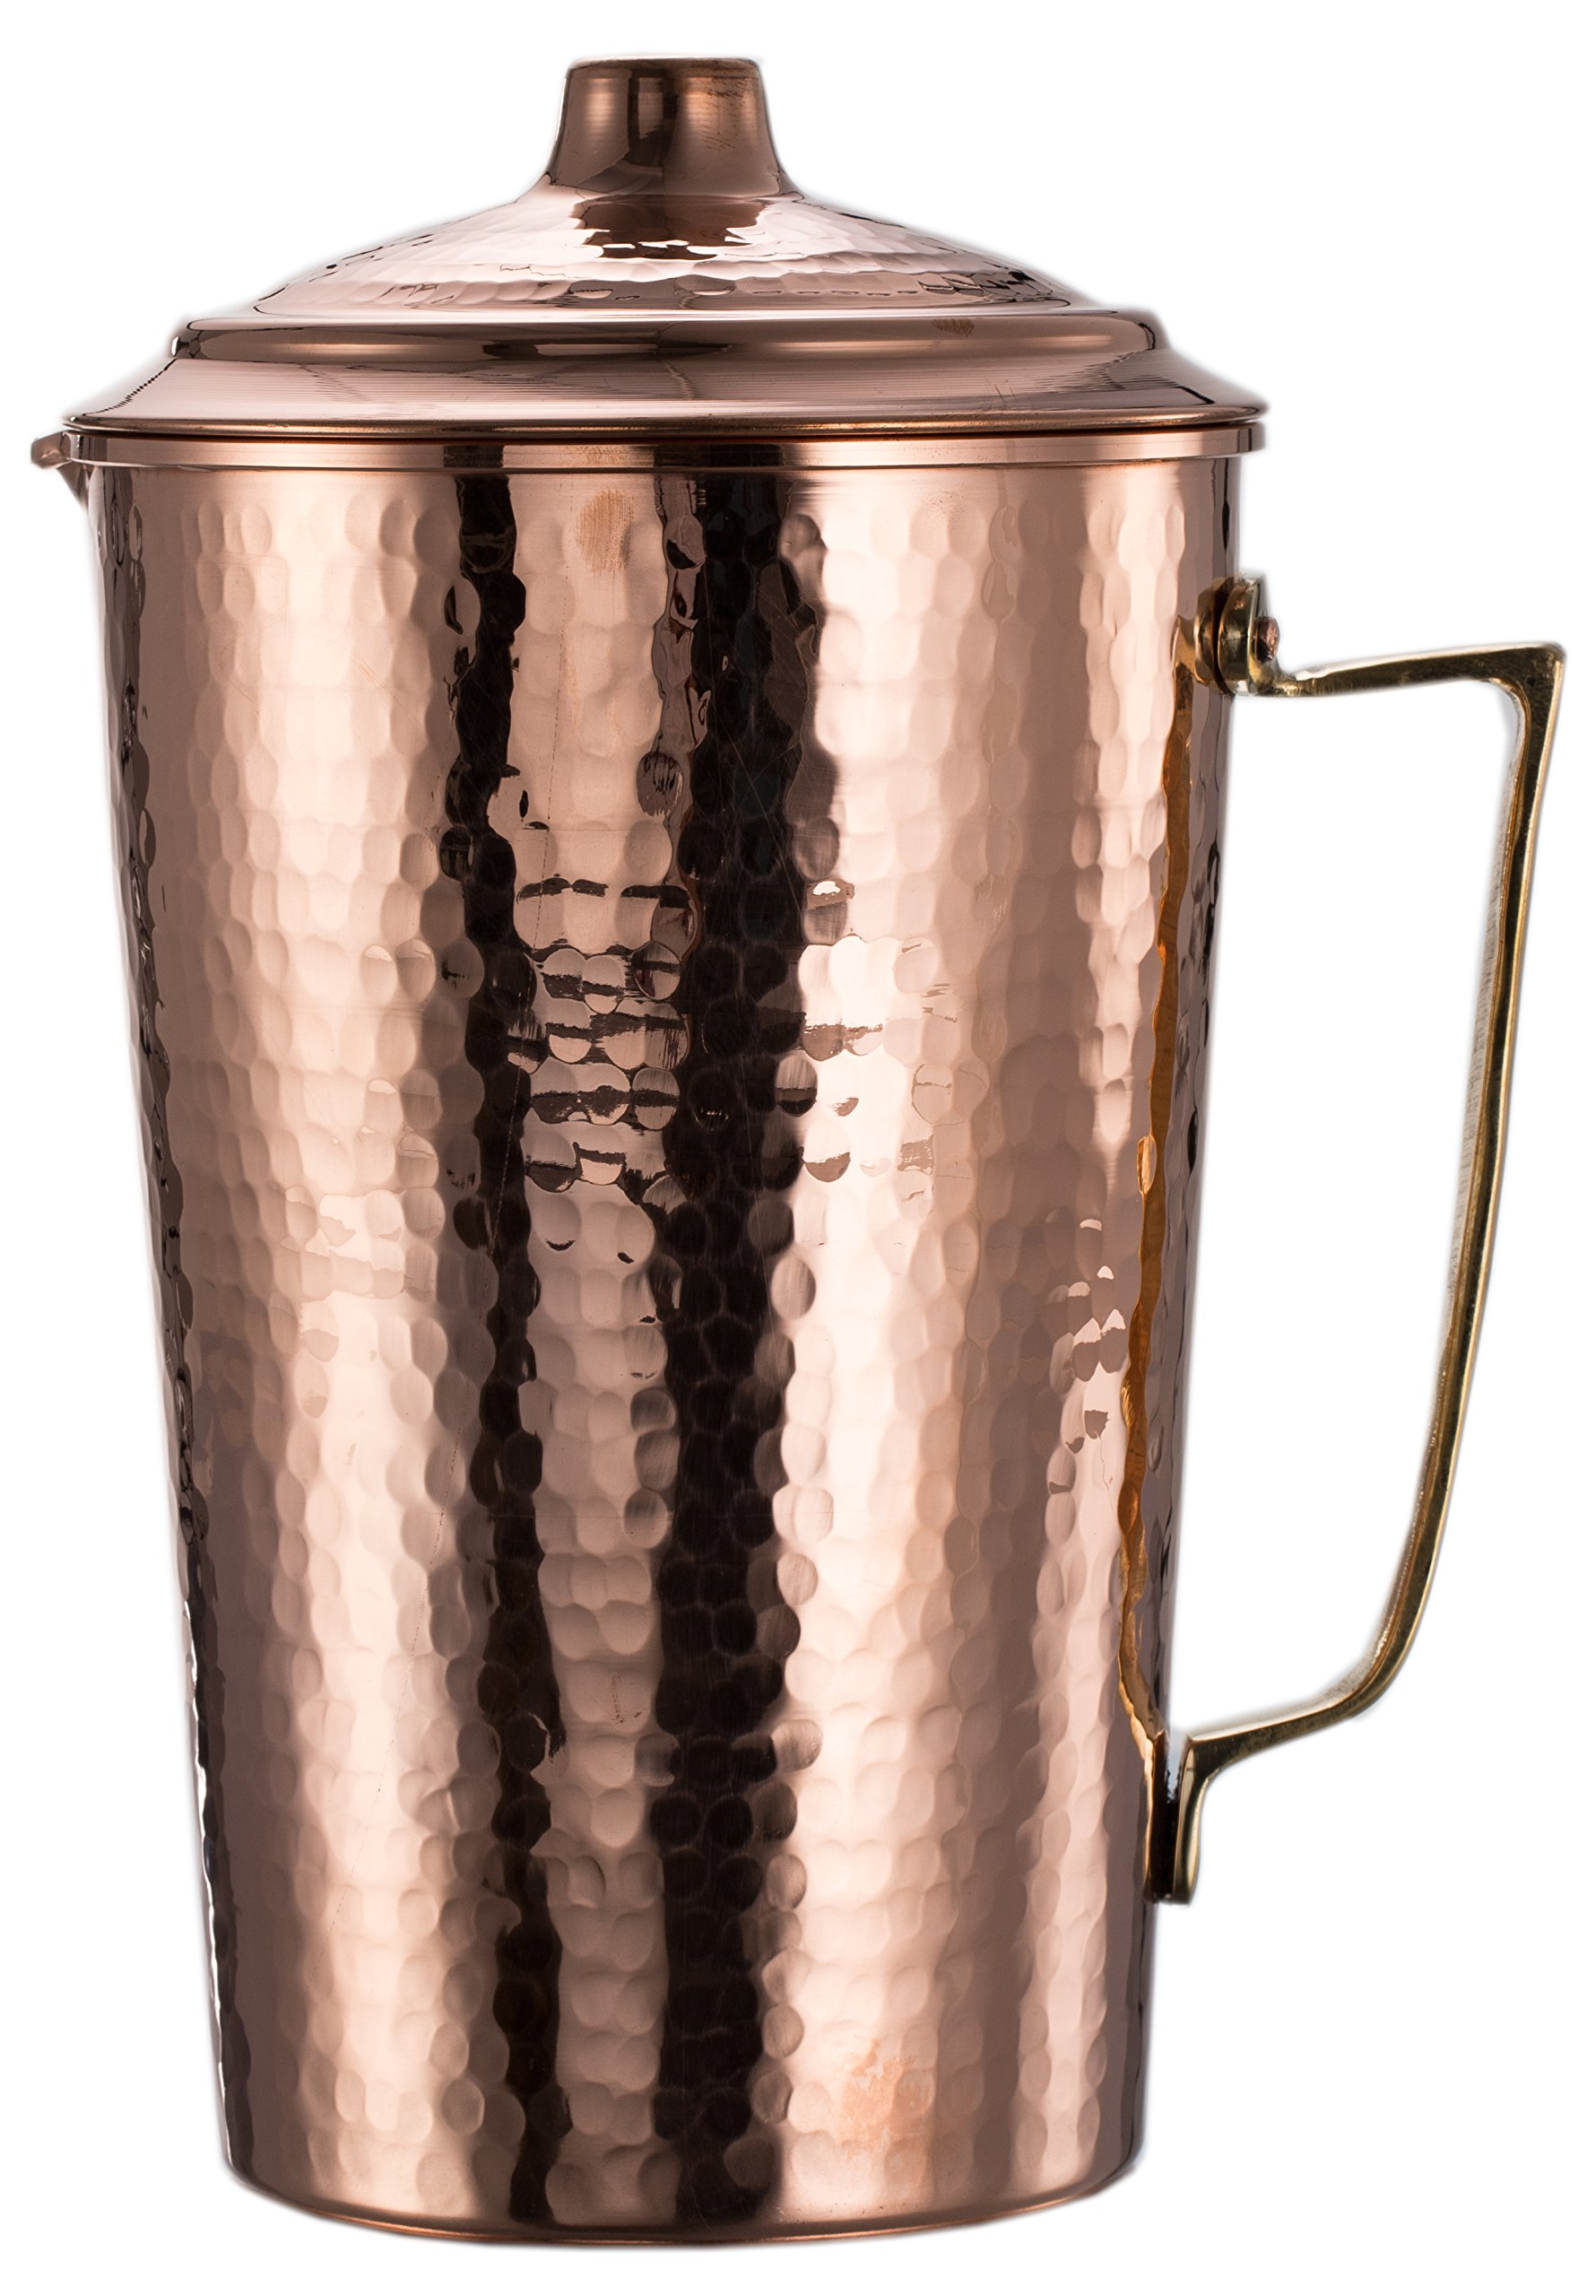 New* CopperBull 2017 Heavy Gauge 1mm Solid Hammered Copper Water Moscow Mule Serving Pitcher Jug with Lid, 2.2-Quart (Hammered Copper) by CopperBull